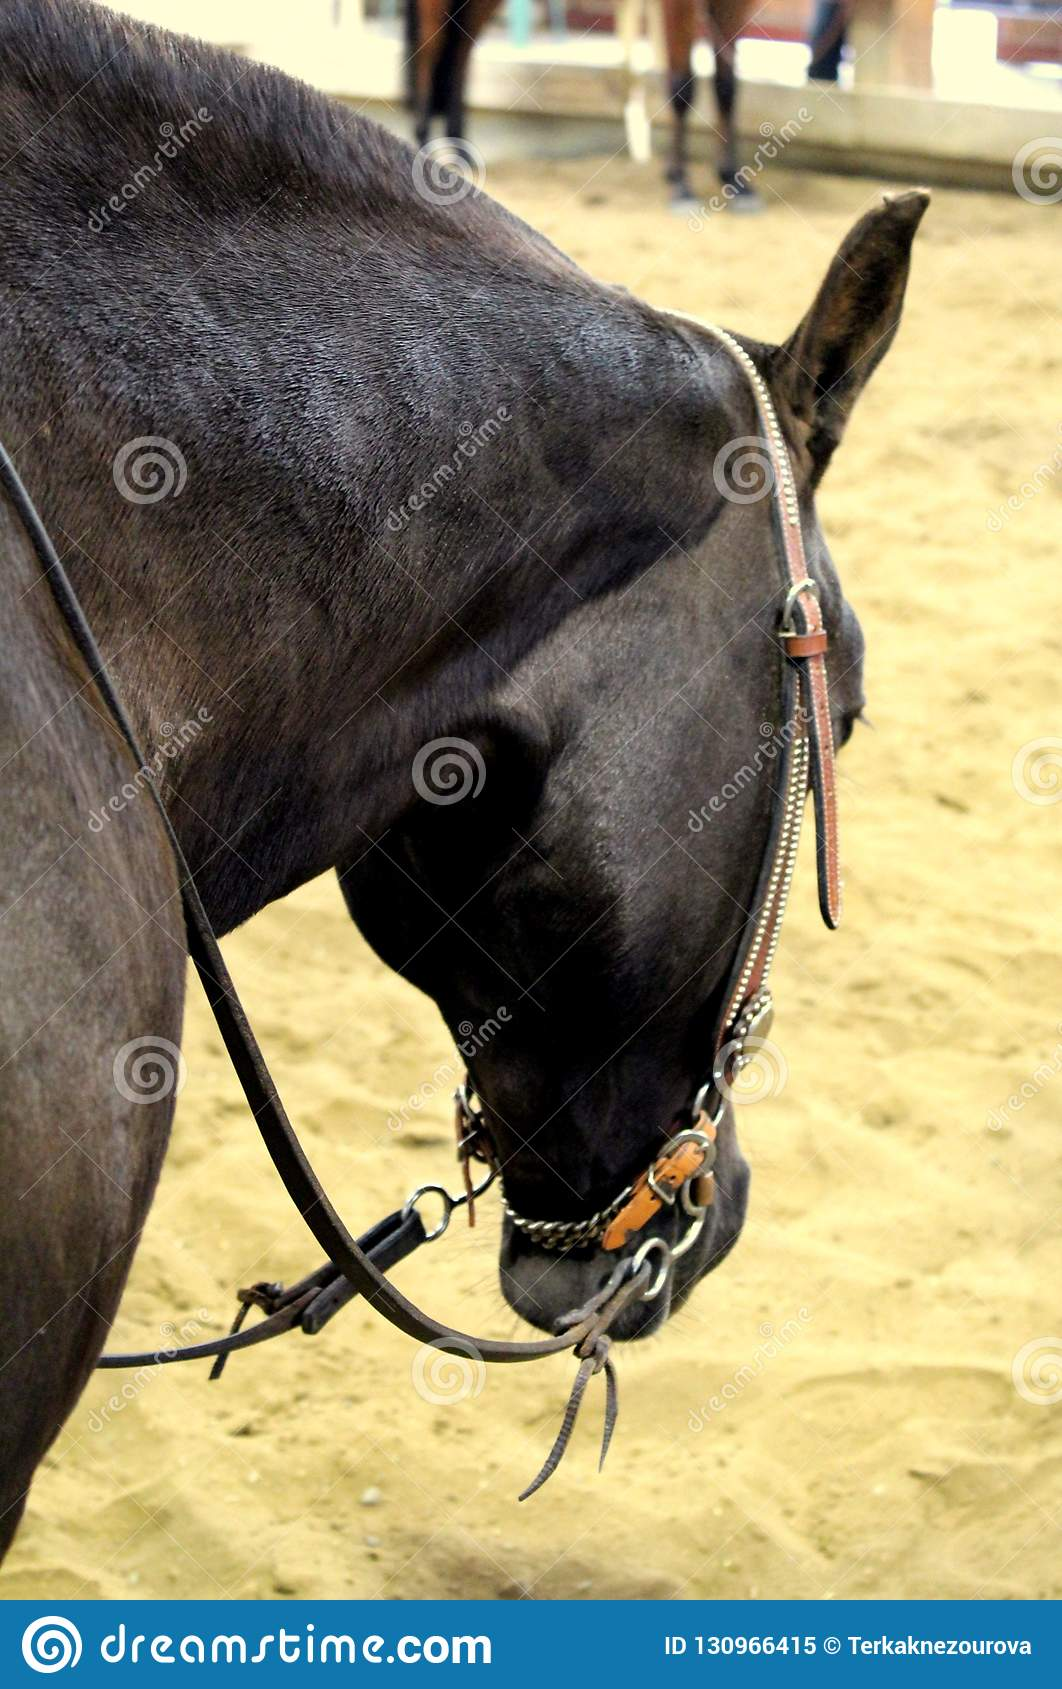 Western Horse Photo Stock Image Image Of Cute Headstall 130966415